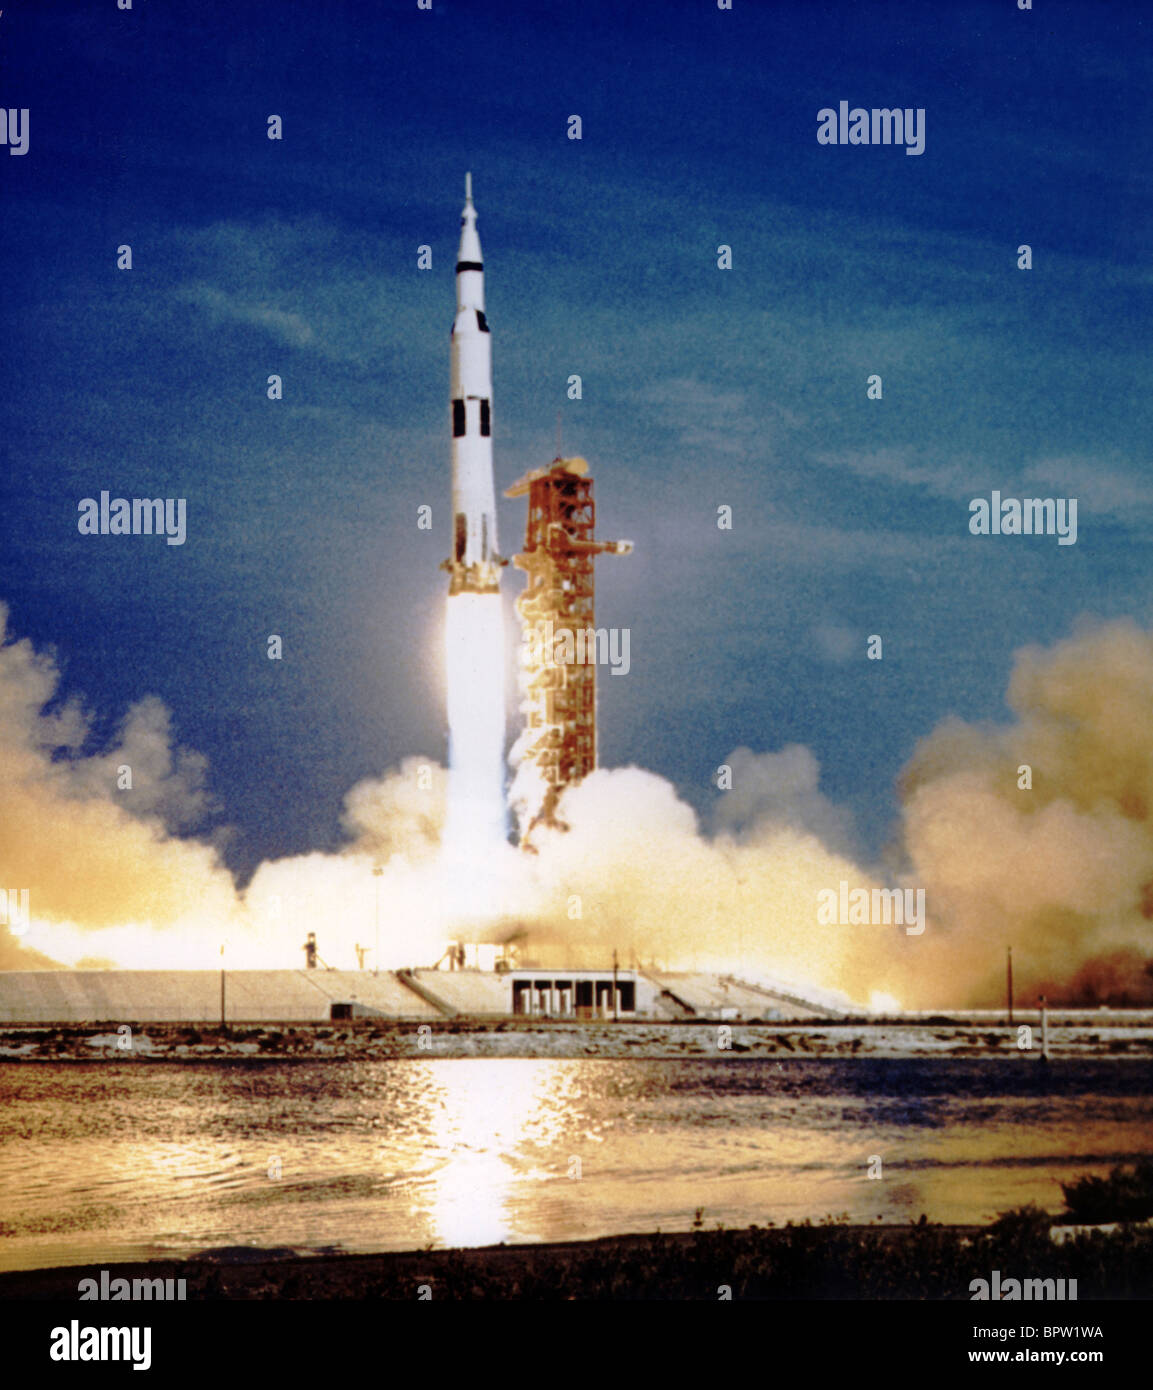 SATURN ROCKET LAUNCH APOLLO 11 (1969) - Stock Image